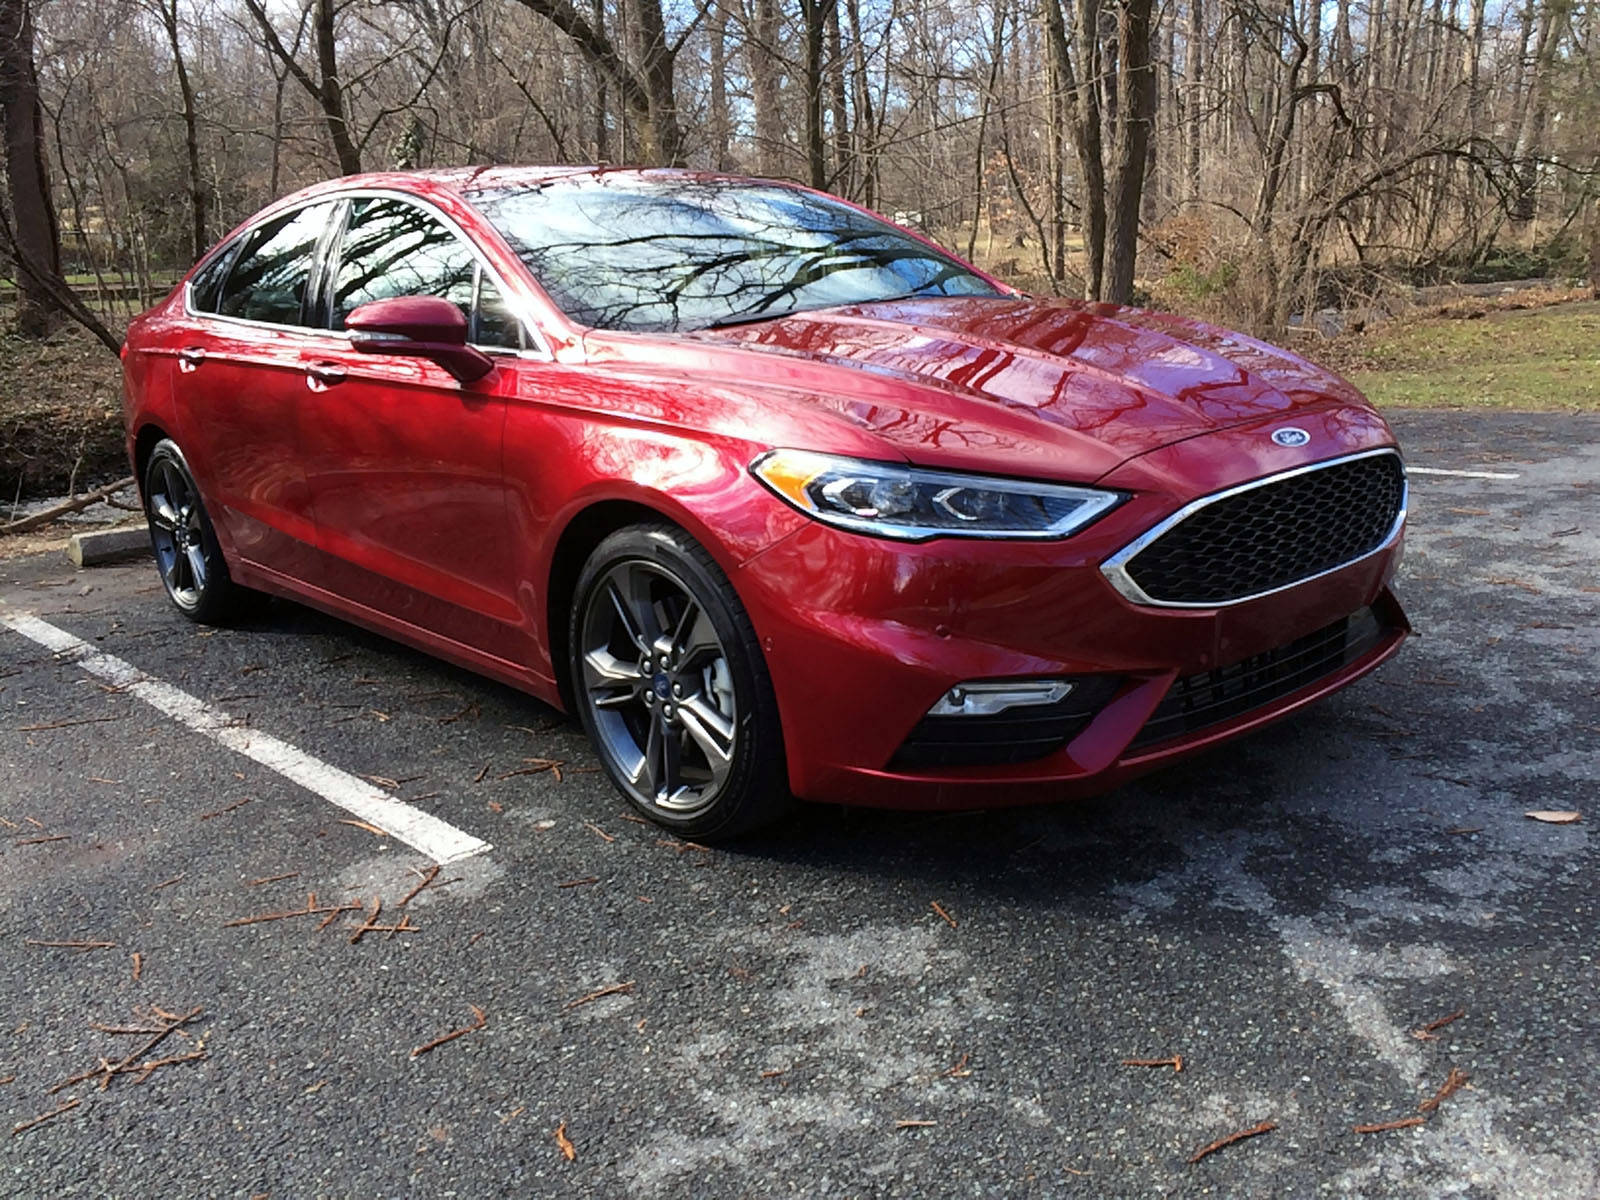 The 2017 Ford Fusion Sport, a powerful standout sedan